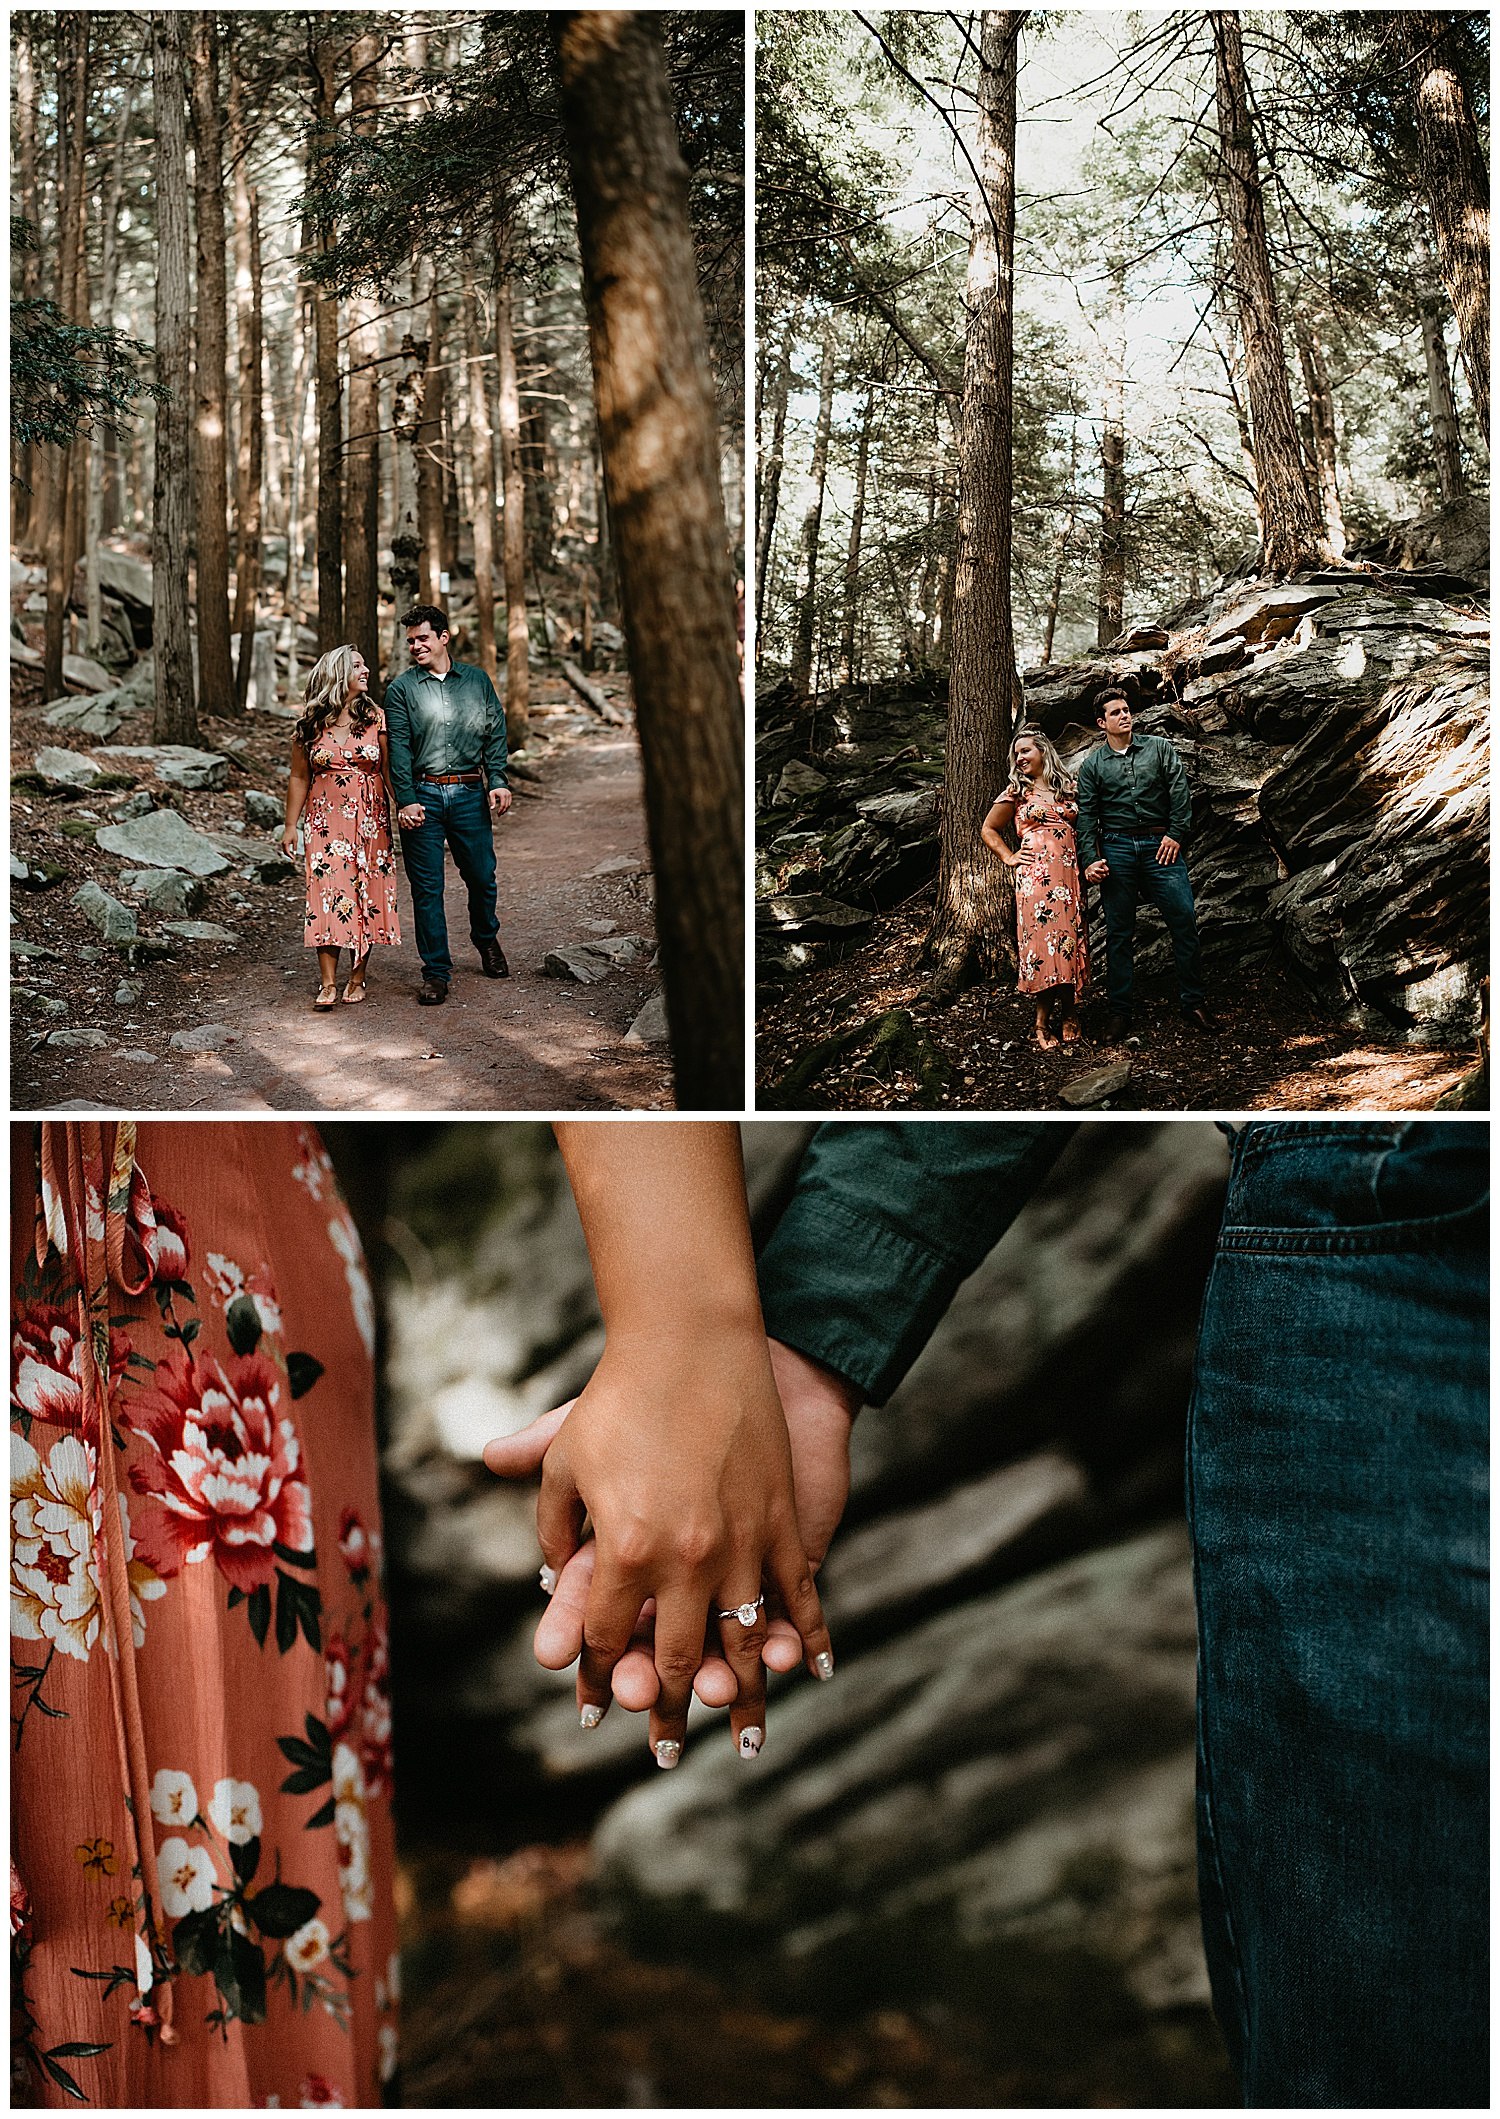 NEPA-Bloomsburg-Lehigh-Valley-Wedding-Photographer-Engagement-session-at-Ricketts-Glen-State-Park_0005.jpg